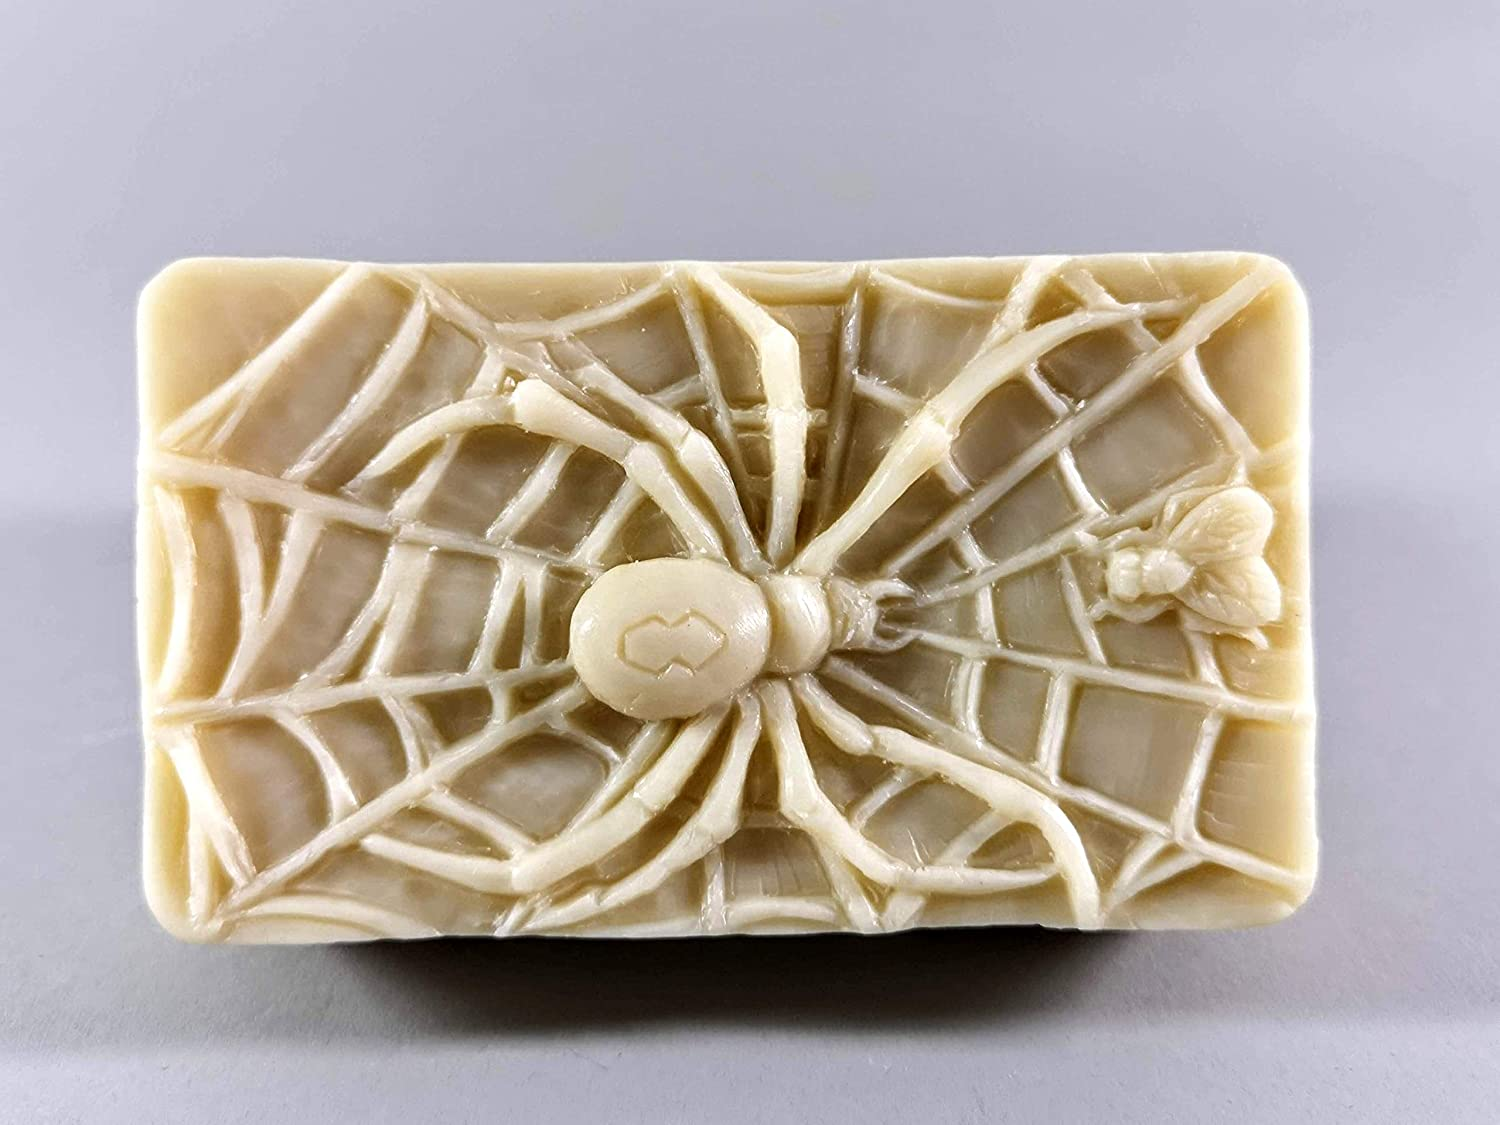 Spider Silicone Mold SOAP Plaster Wax Resin Clay Fly